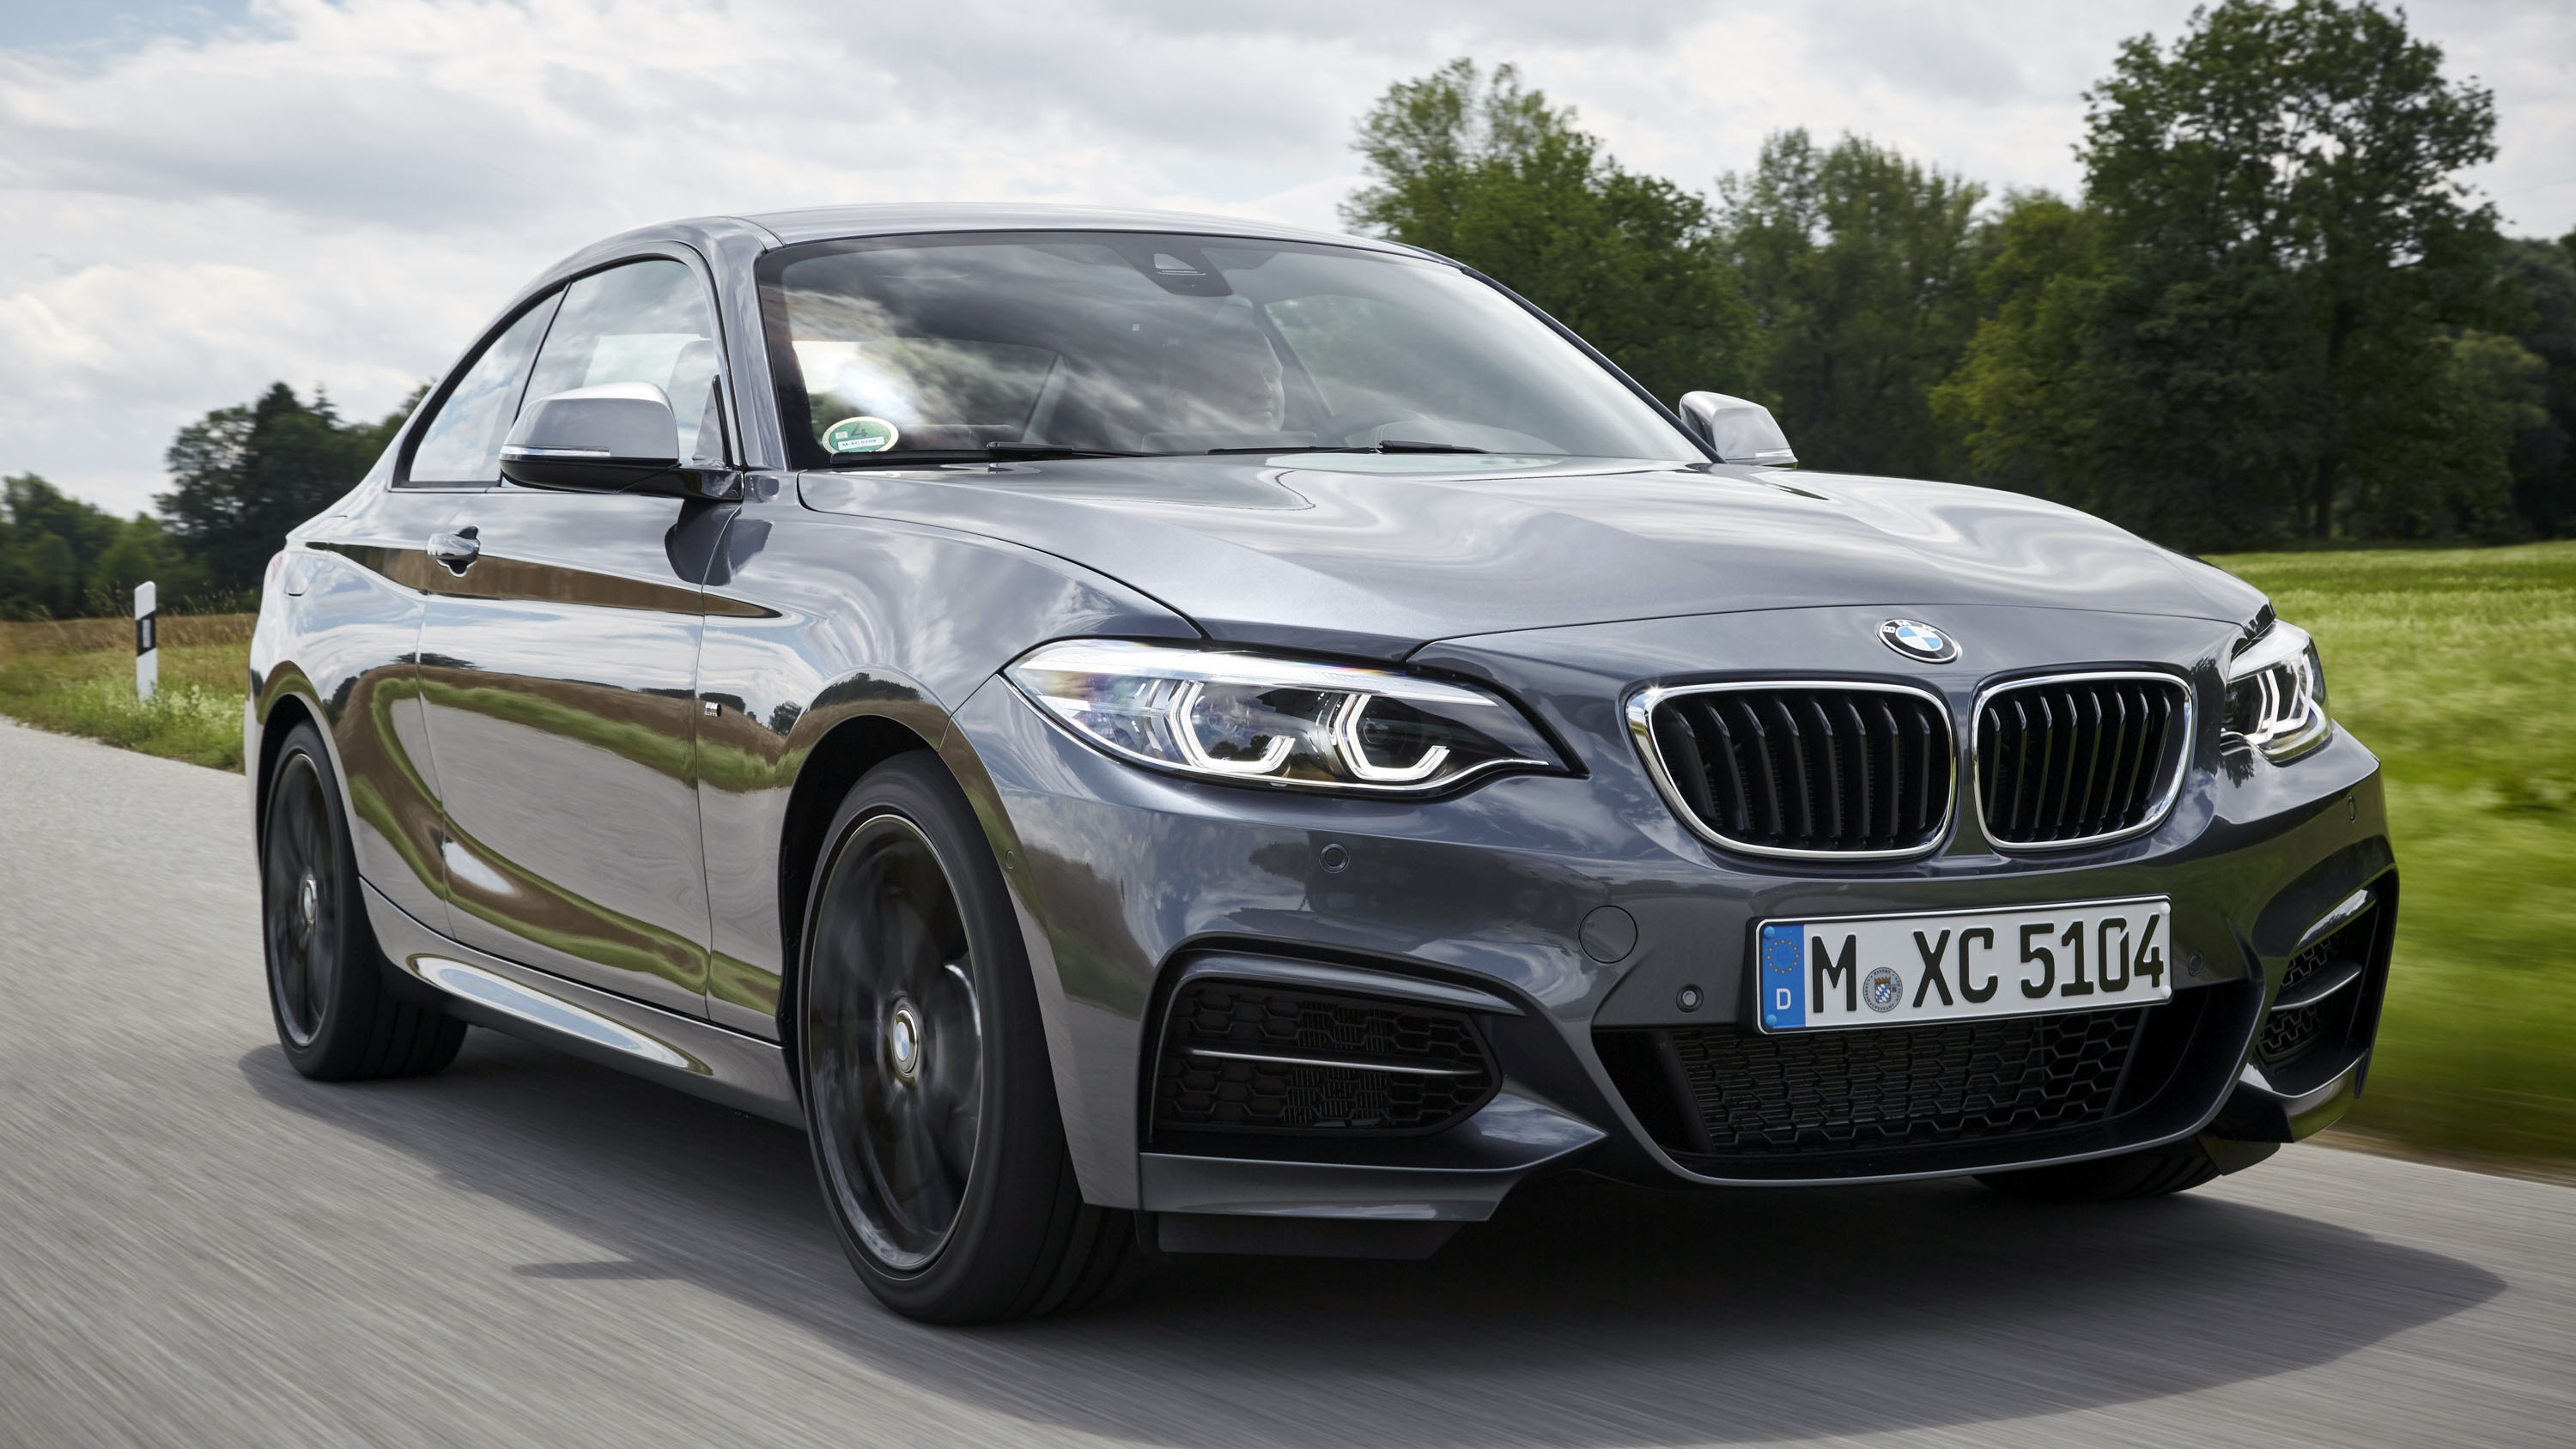 The 2019 bmw 2 series coupe retains rwd convertible model cancelled pictures photos - Bmw 2 series coupe pictures ...